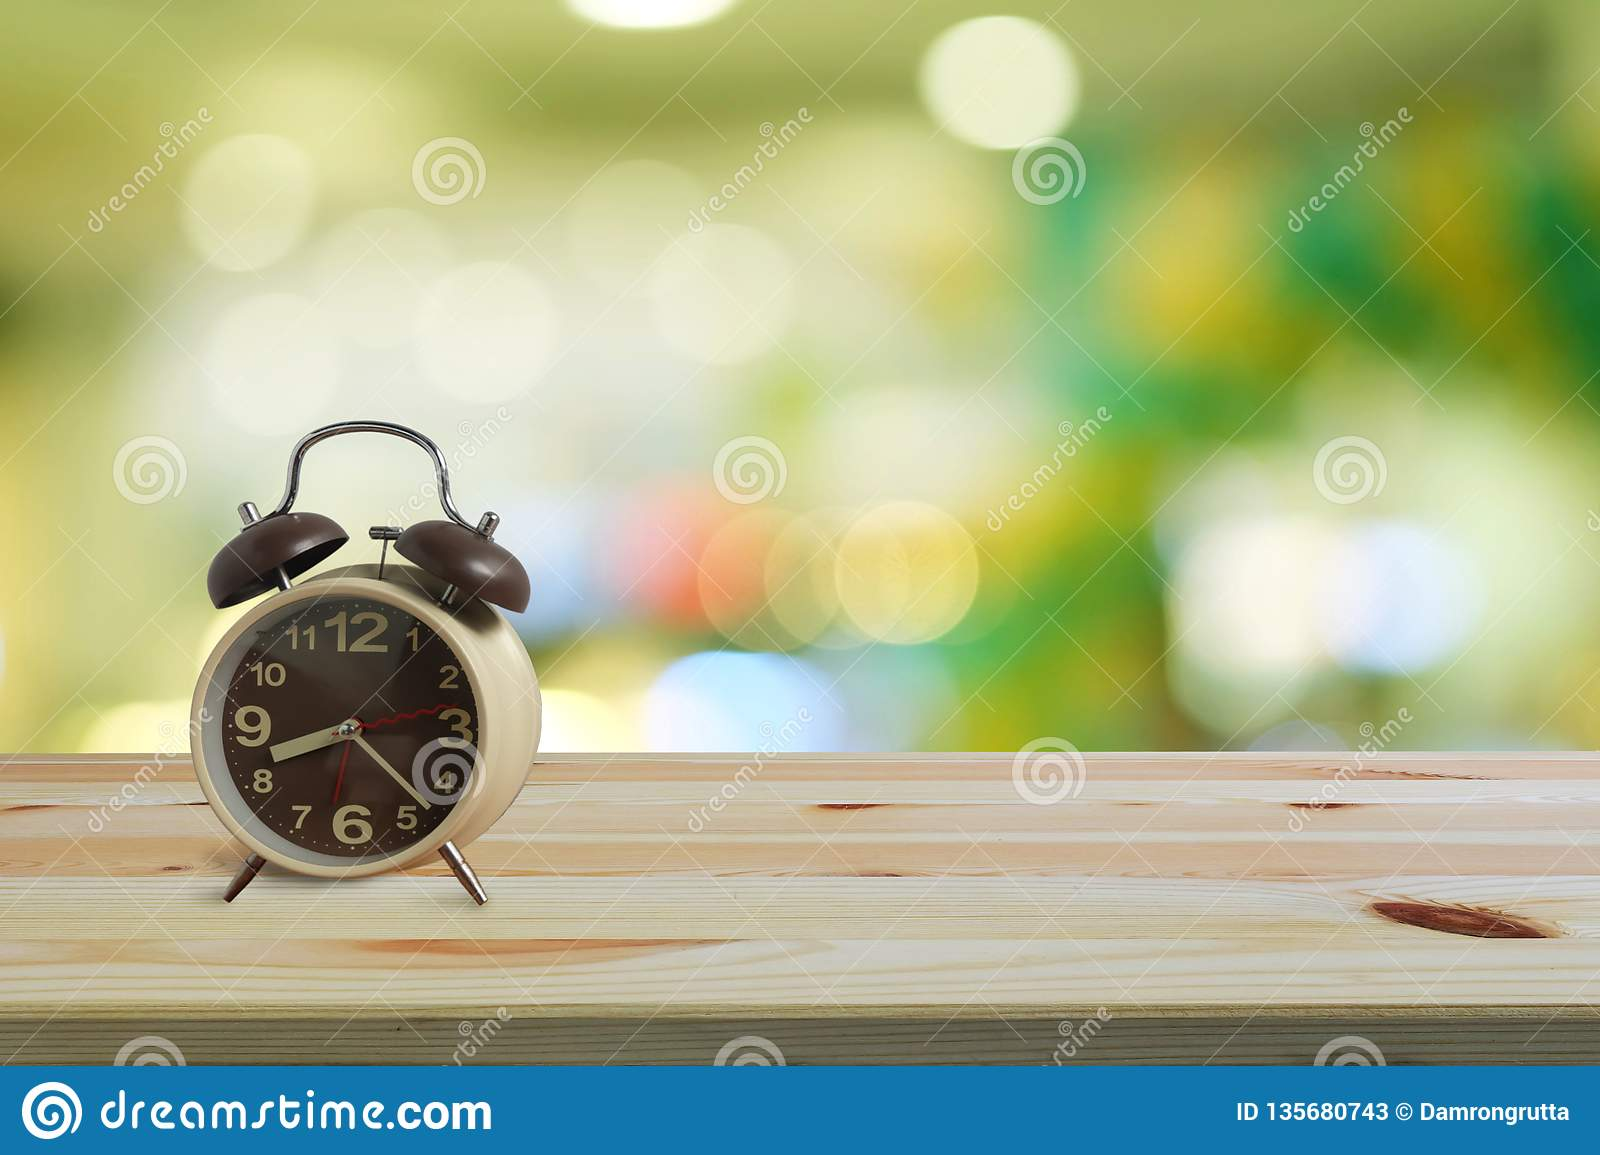 Alarm clock on wooden floor and green bokeh background with copy space, Morning wake up is bright air of nature